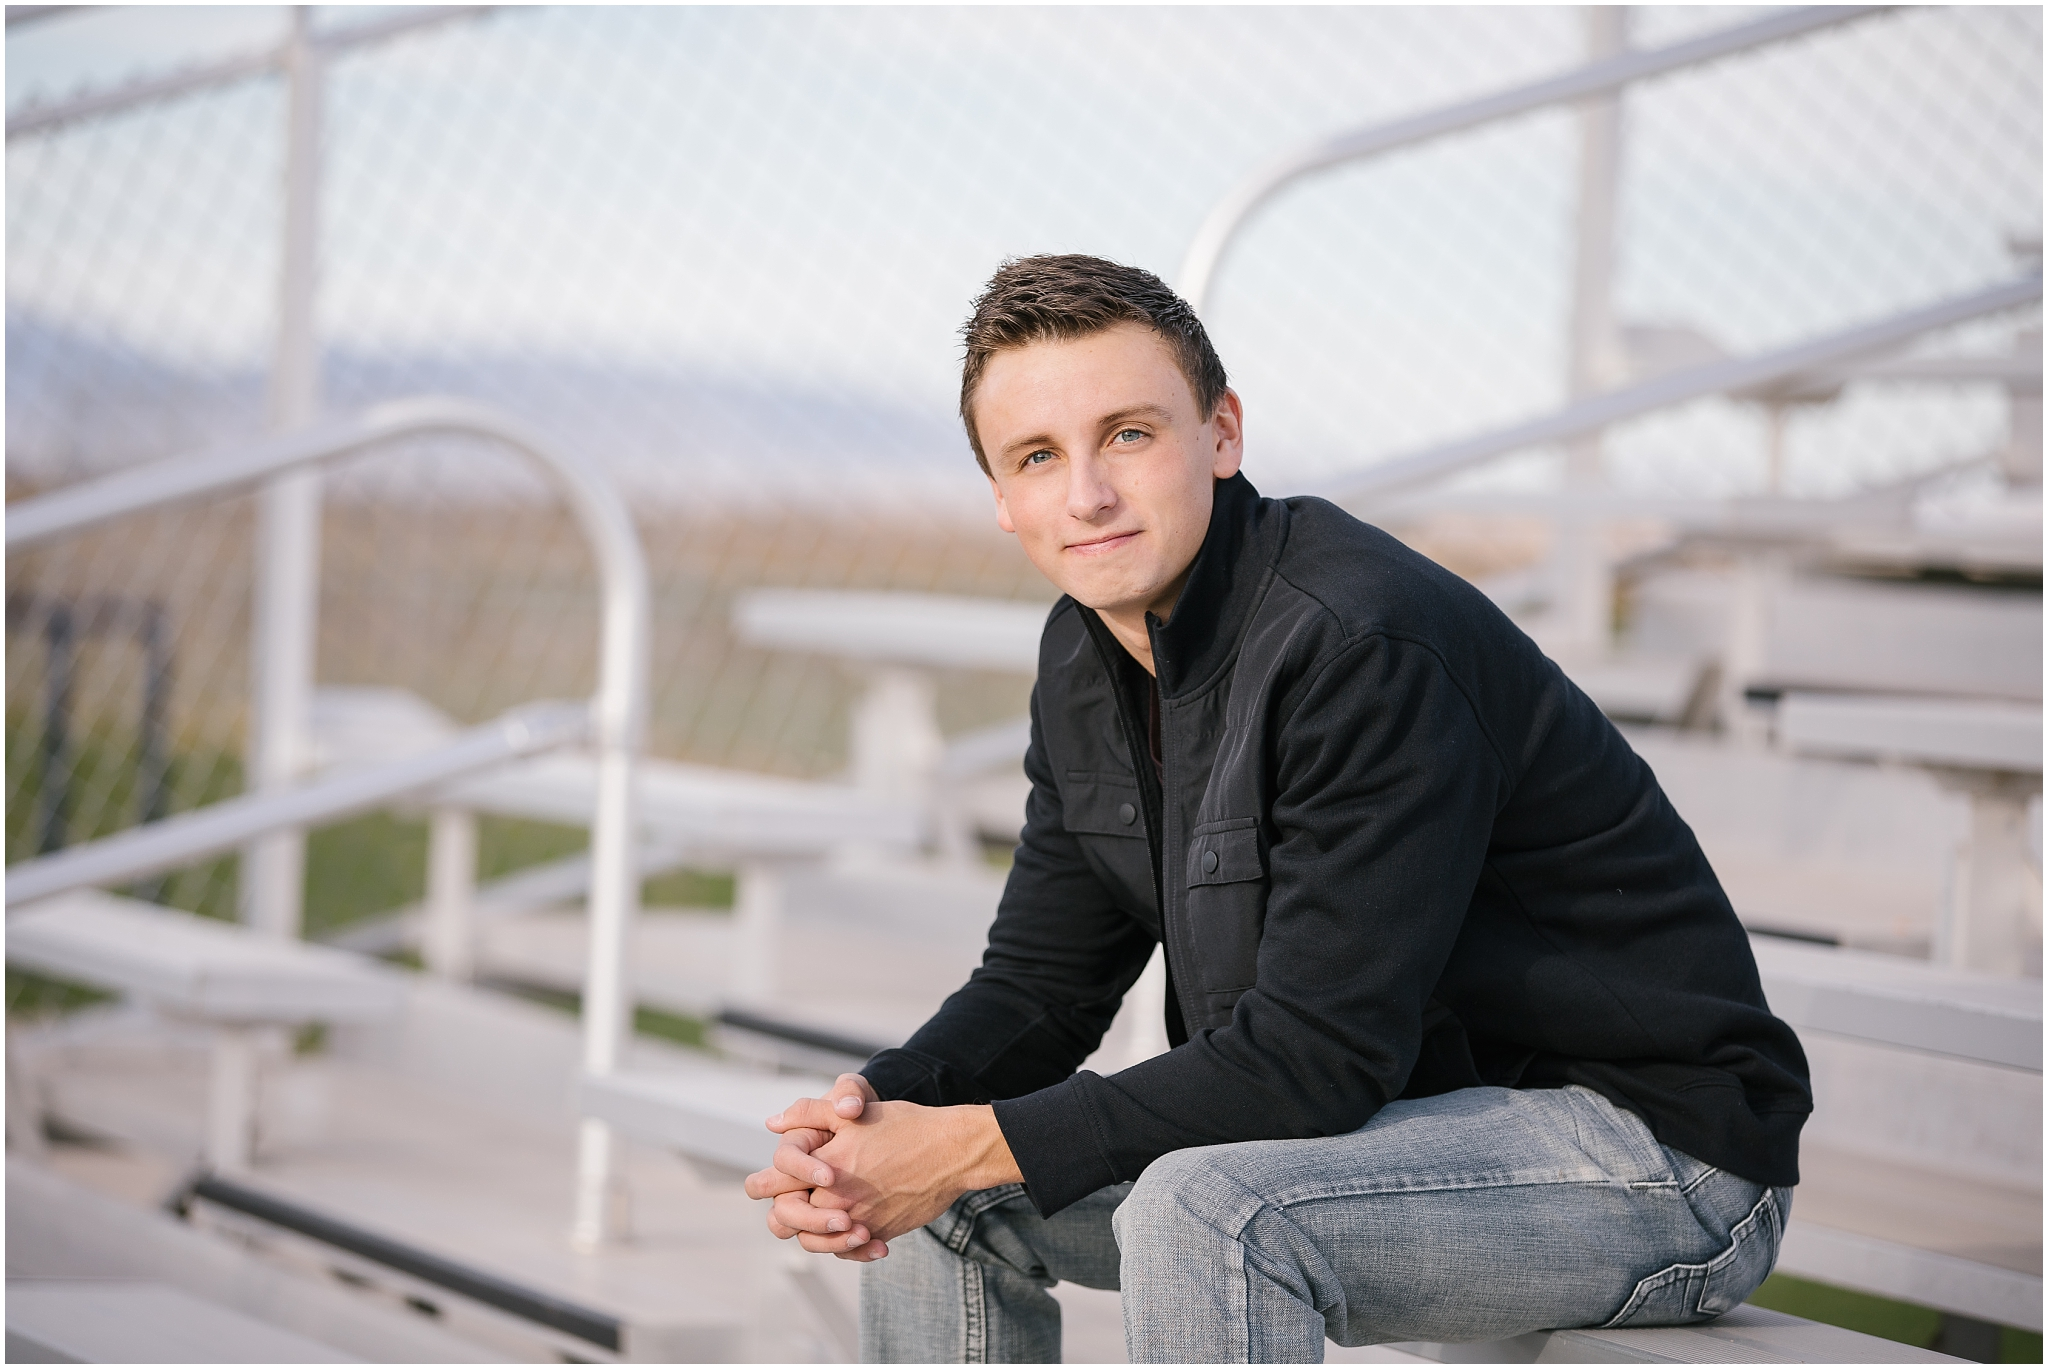 Marcus--37_Lizzie-B-Imagery-Utah-Senior-Photographer-Salt-Lake-City-Park-City-Utah-County.jpg